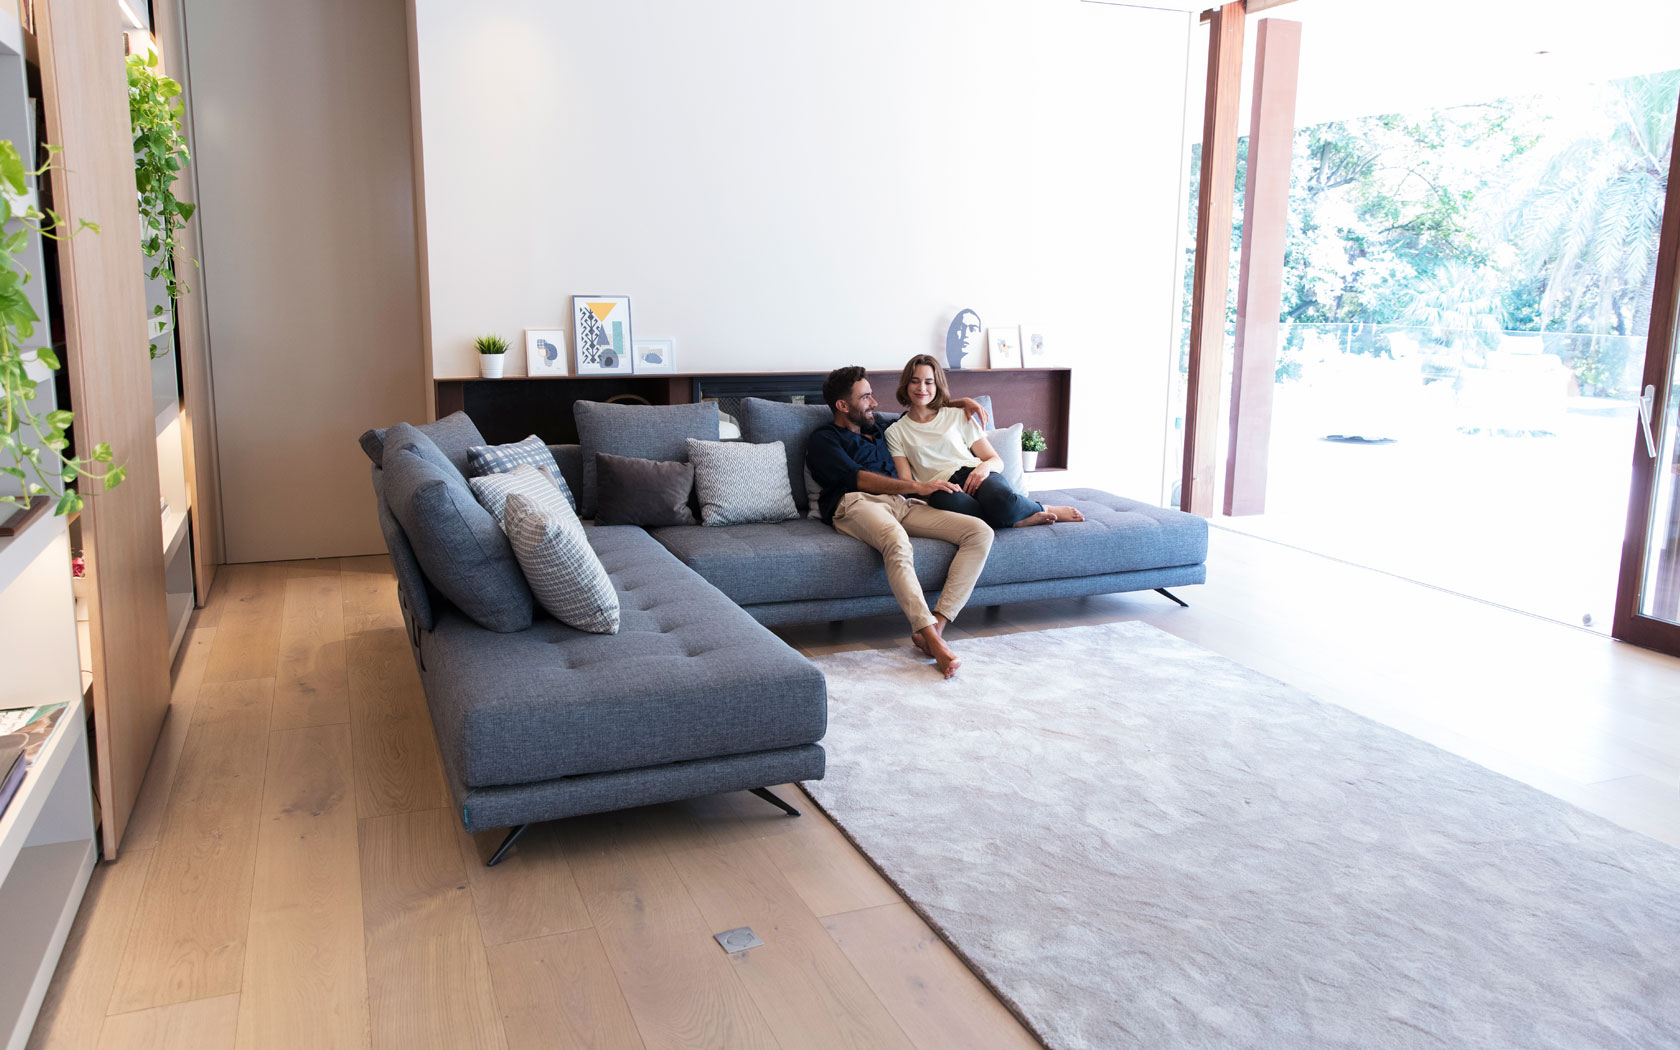 Pacific sofa Fama 2020 03